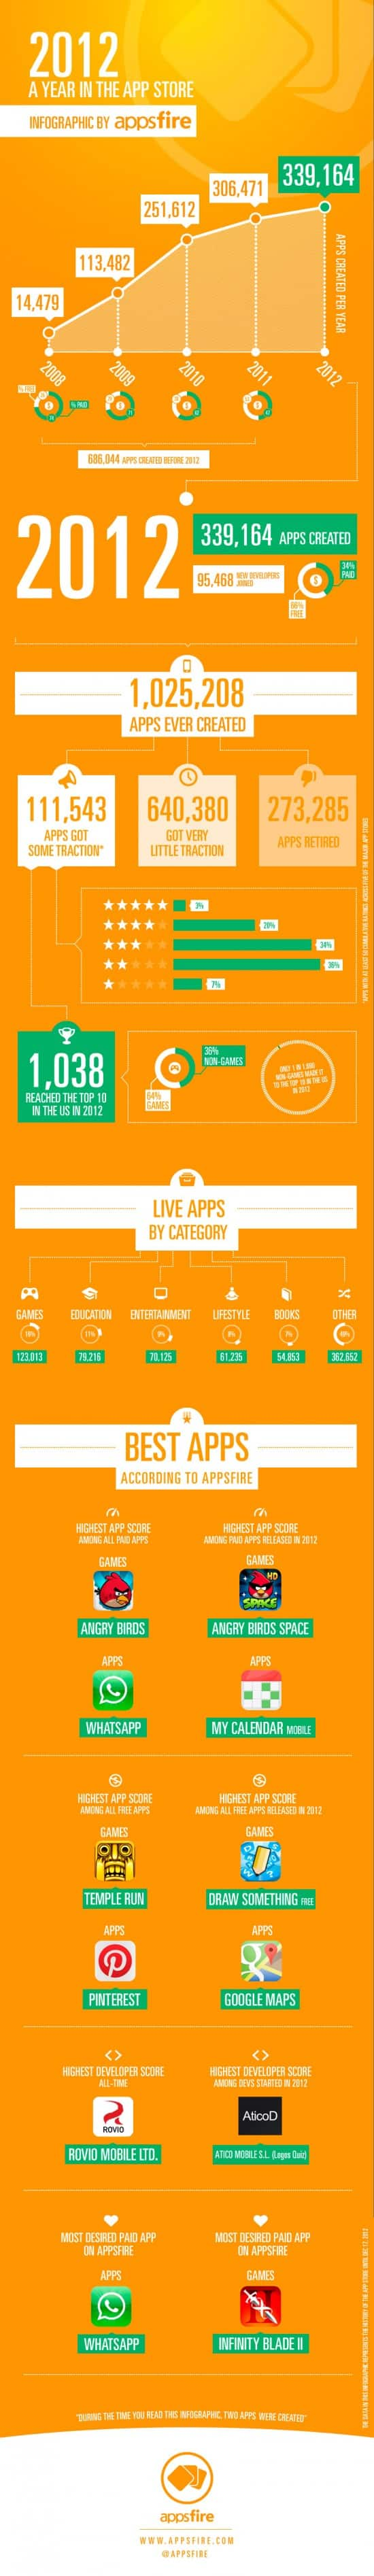 infographic-a-year-in-the-app-store